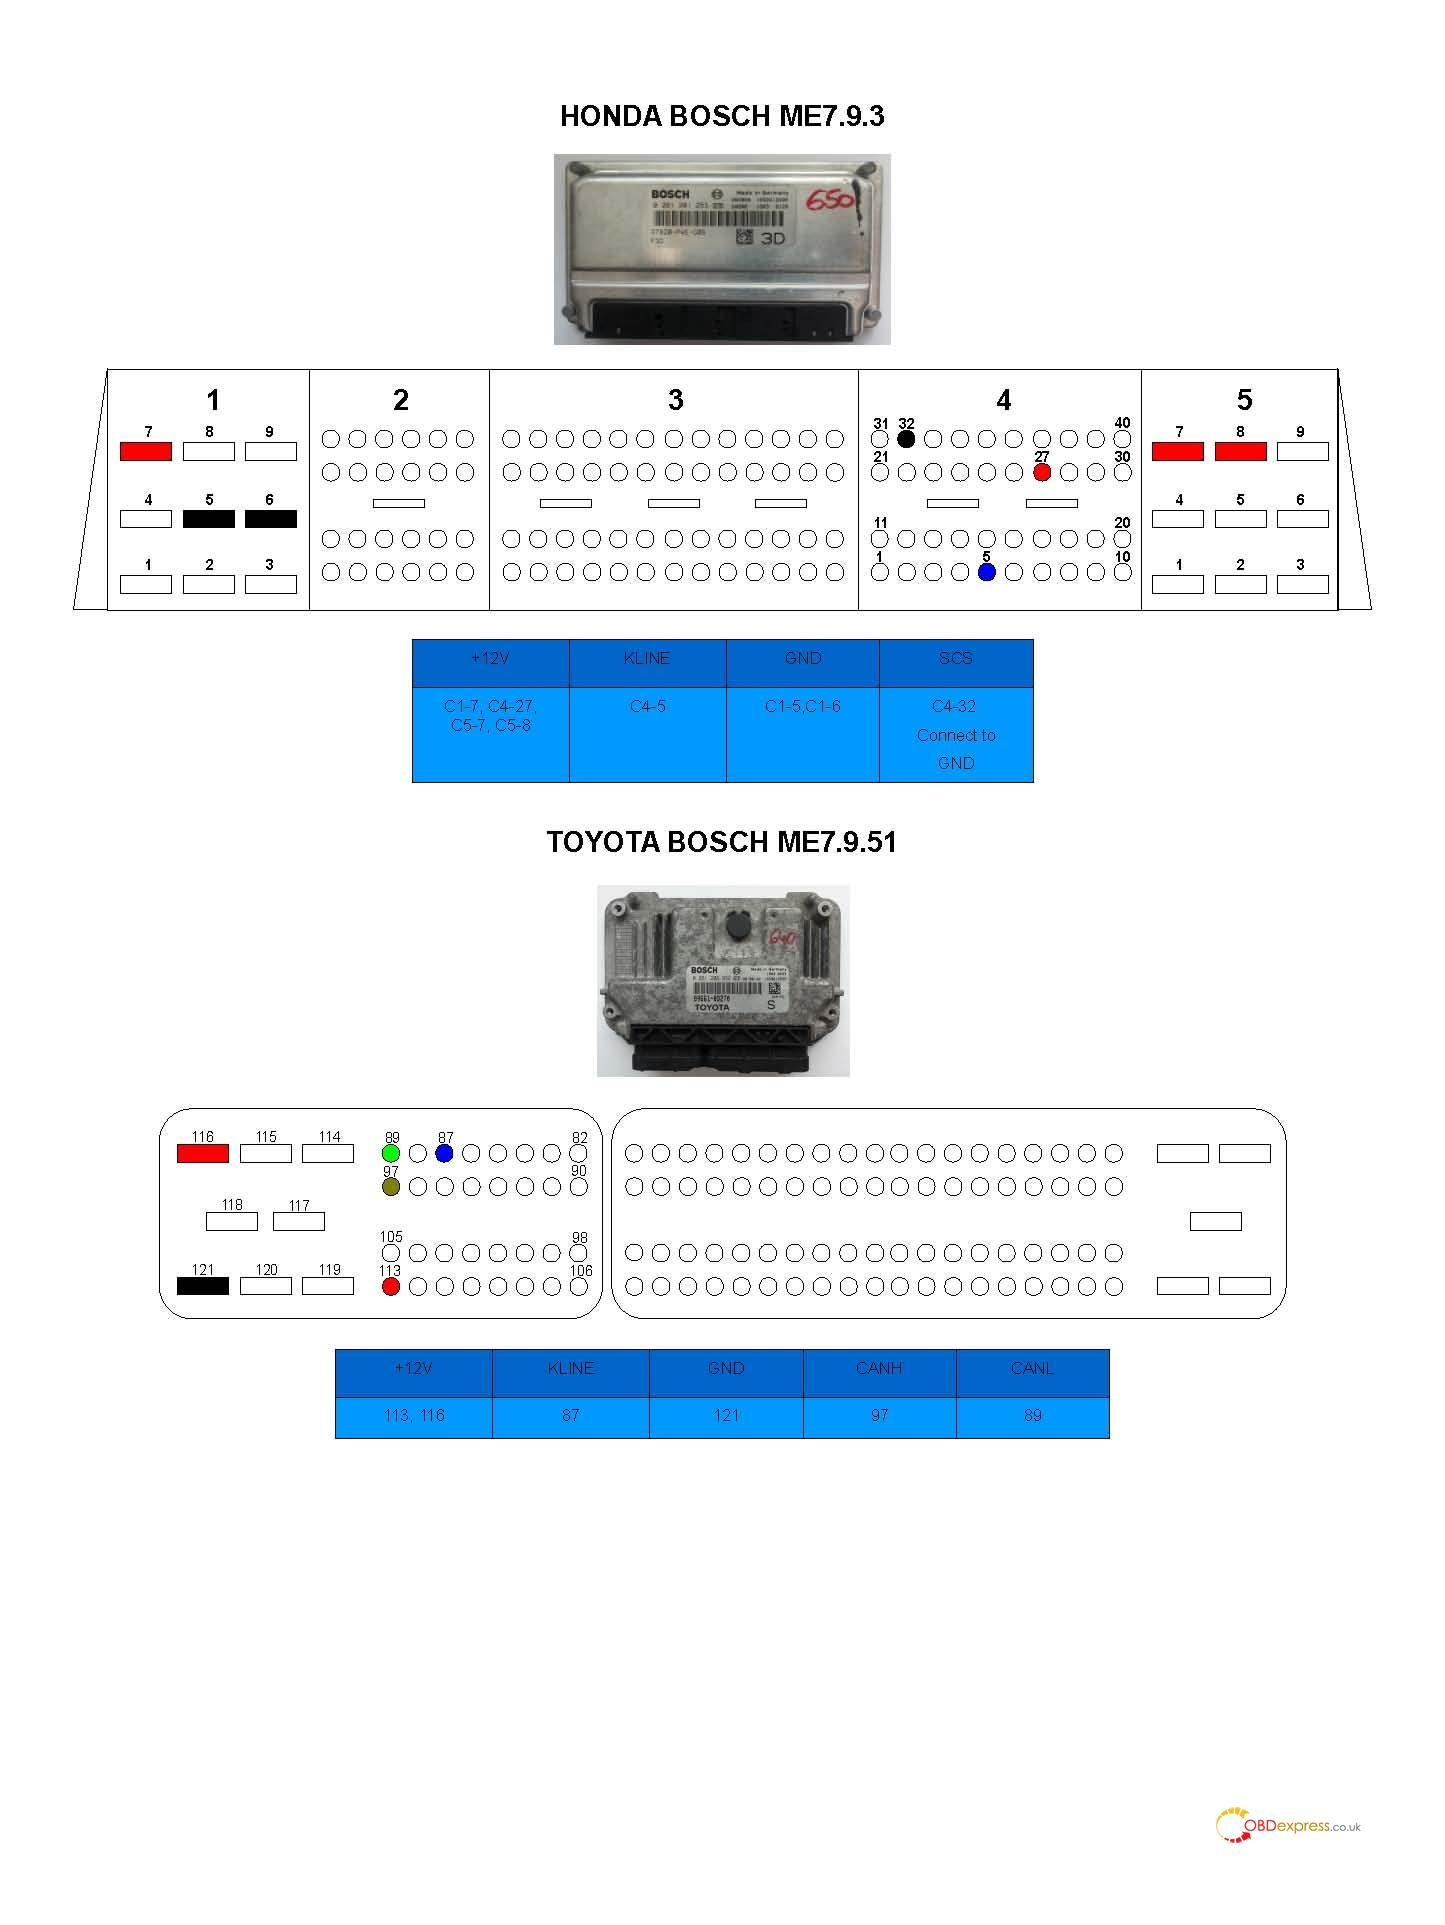 pinout-for-mpps-v18-22